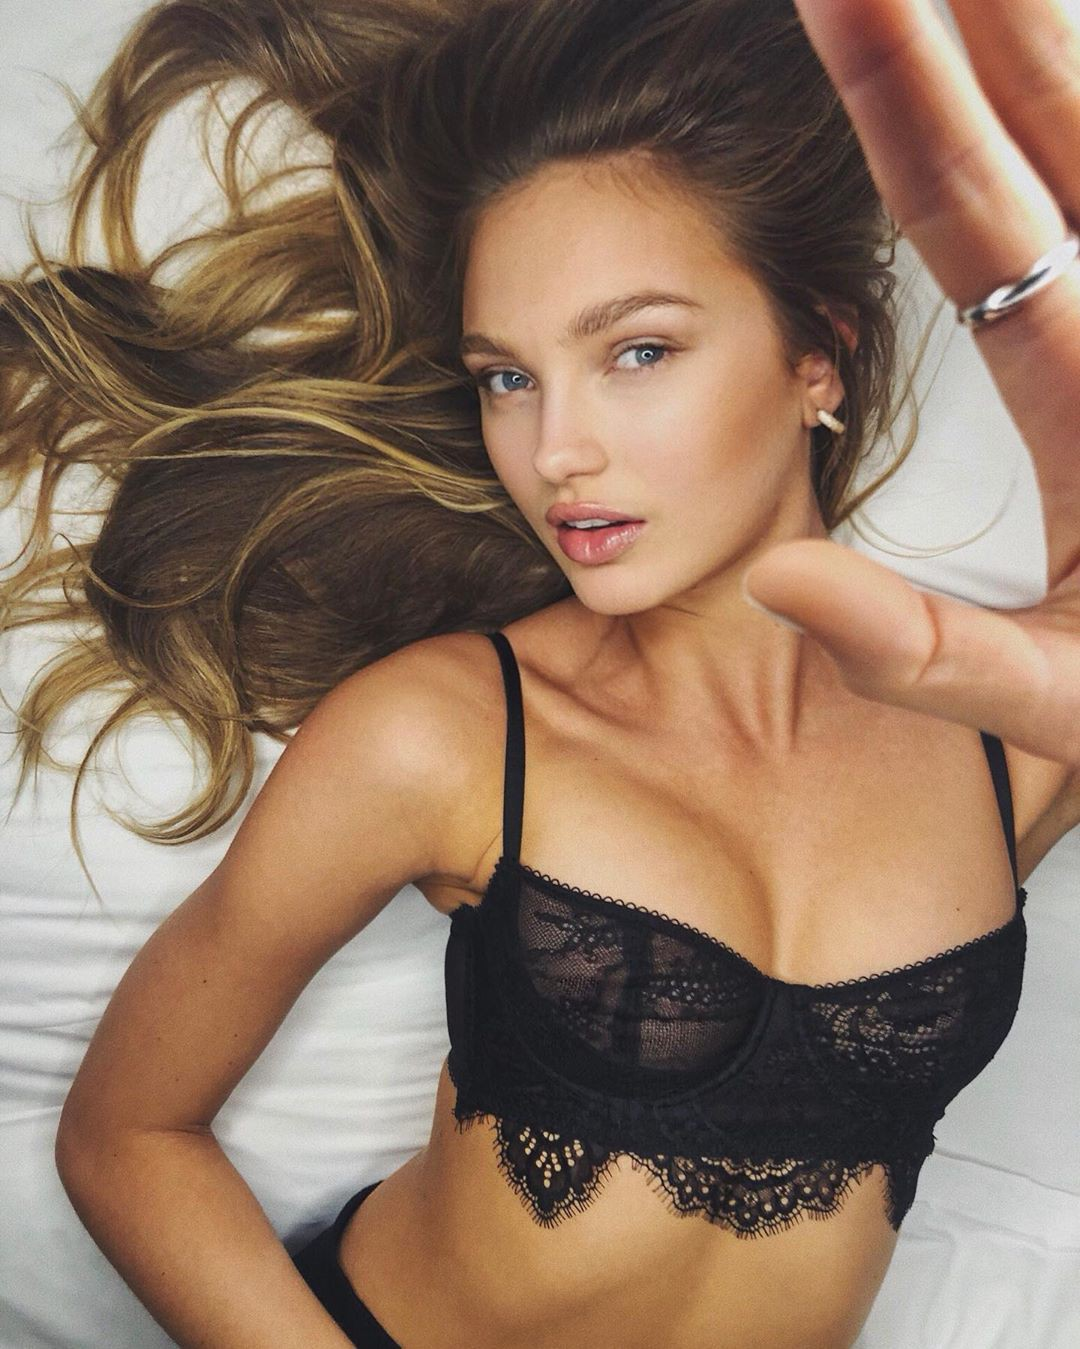 Romee Strijd lingerie clothing ideas, photoshoot poses, Cute Model Pics